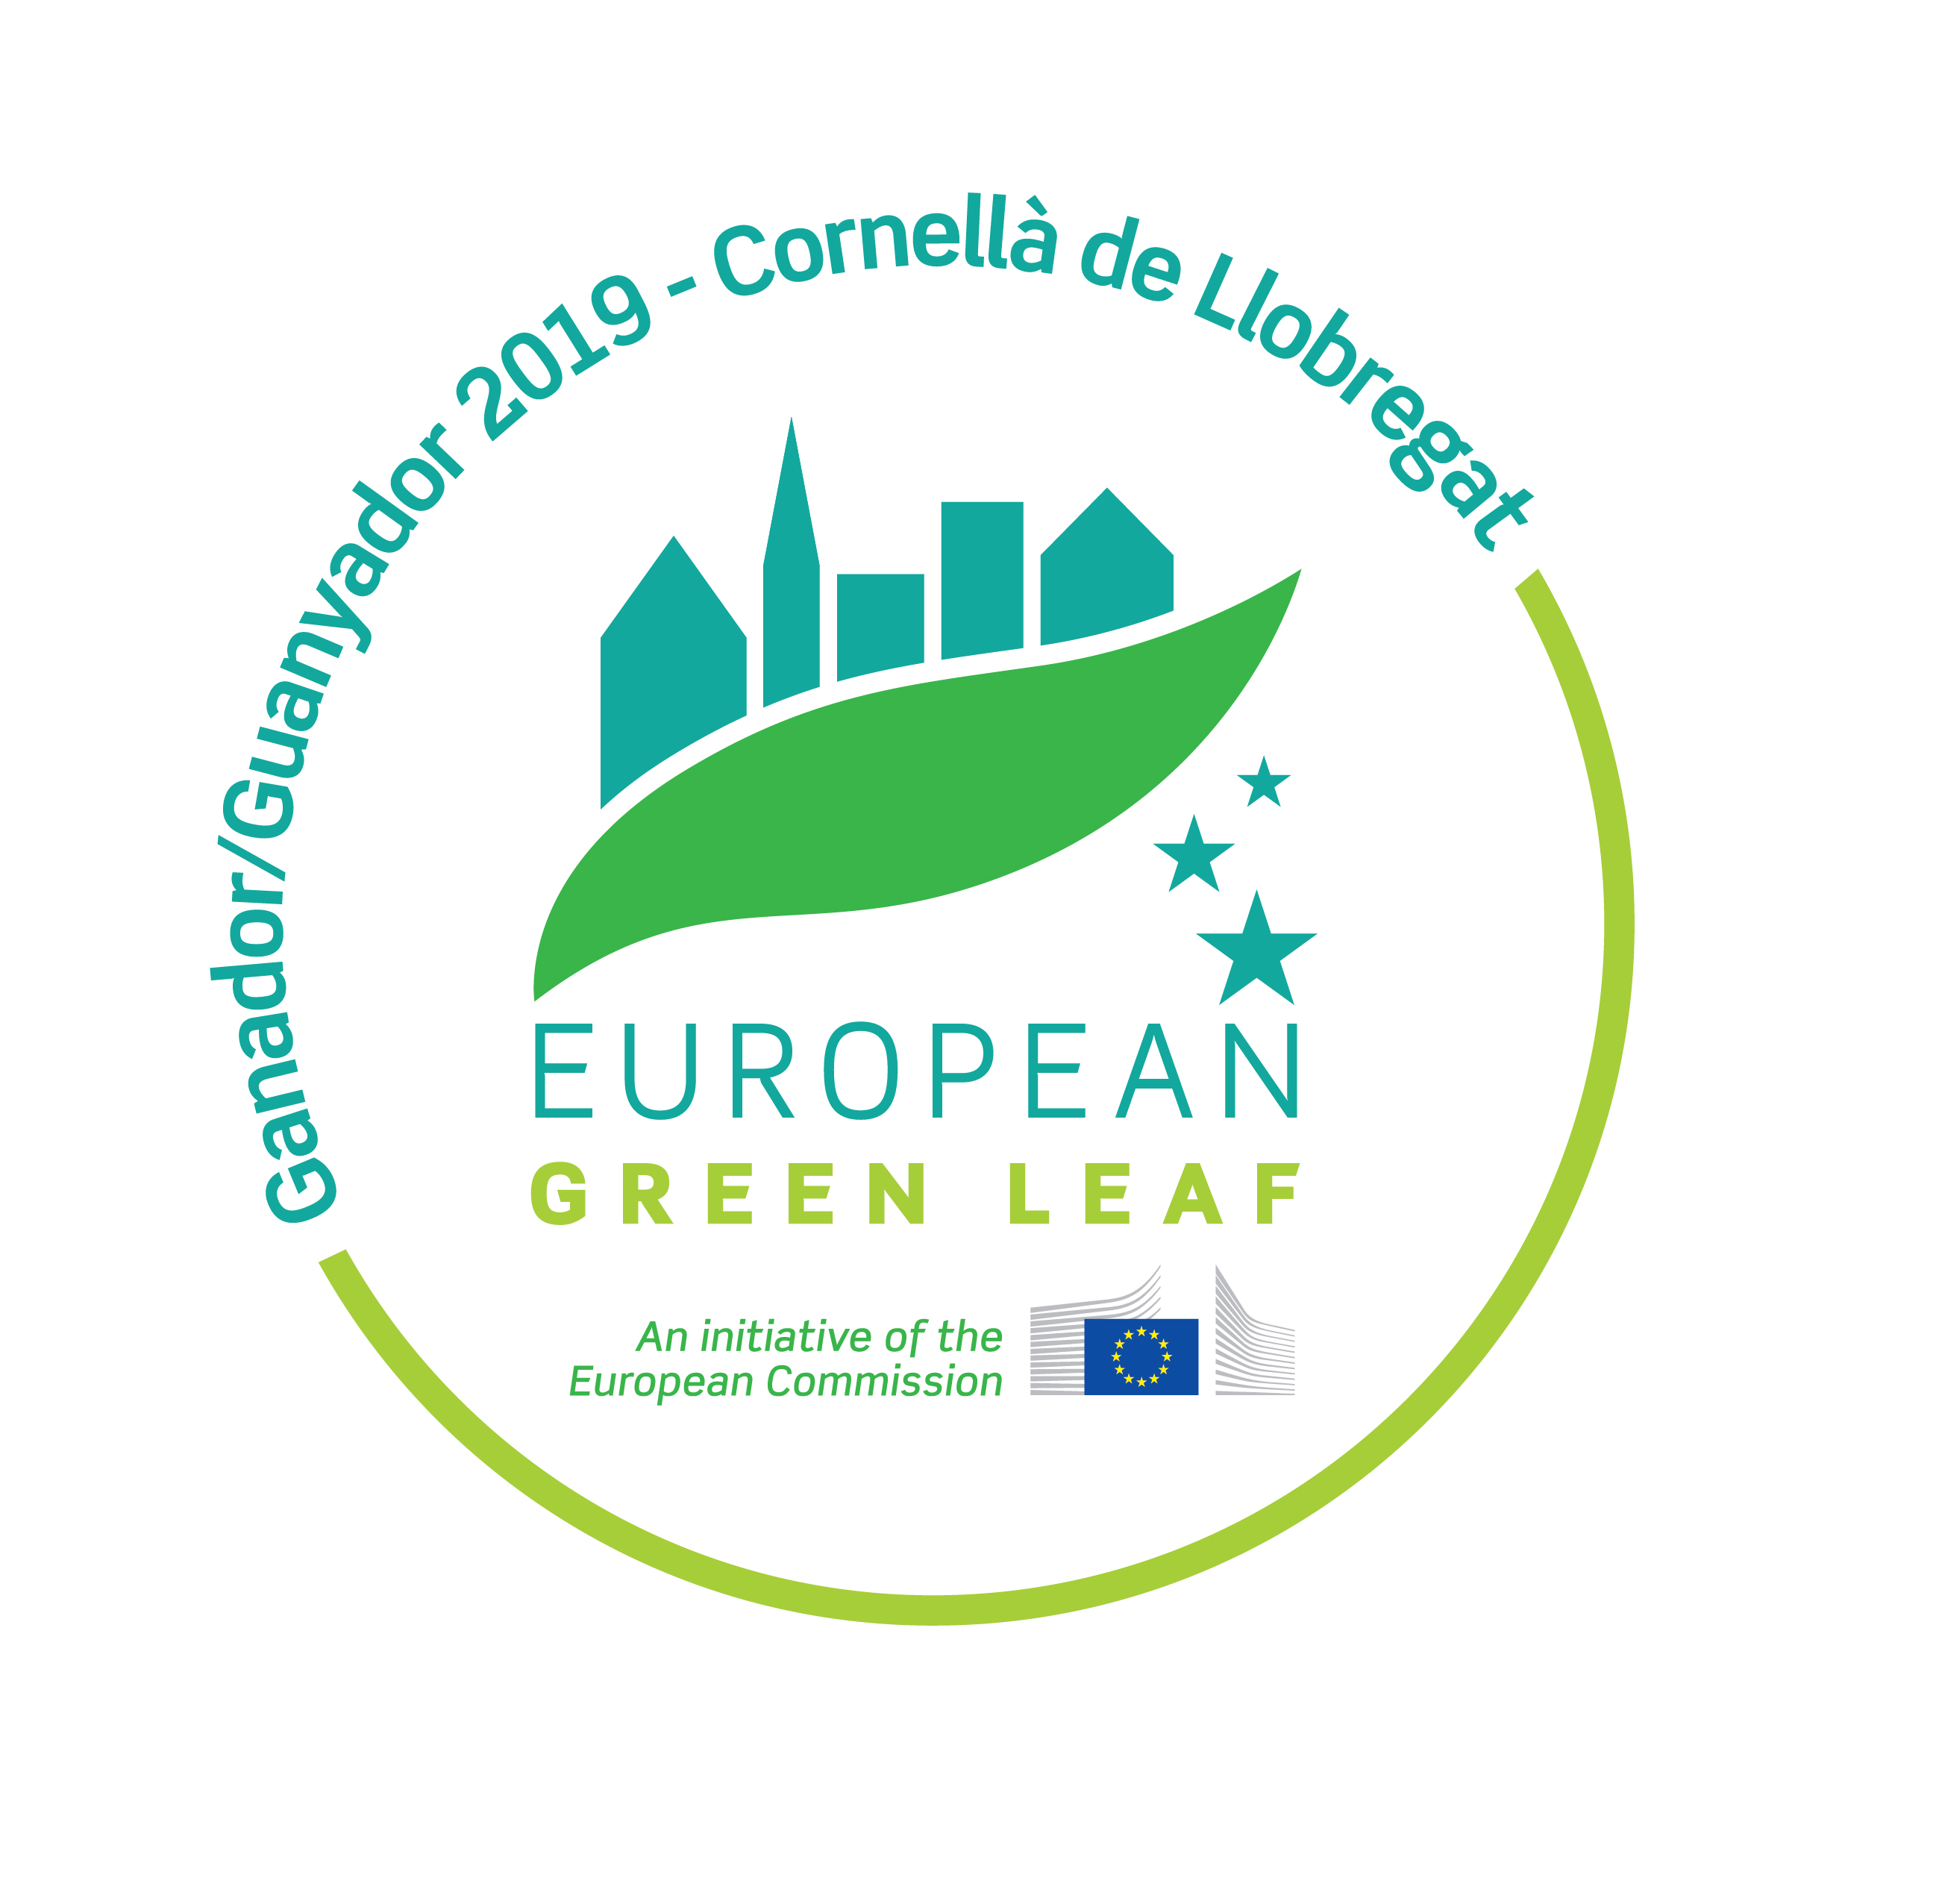 European Green Leaf